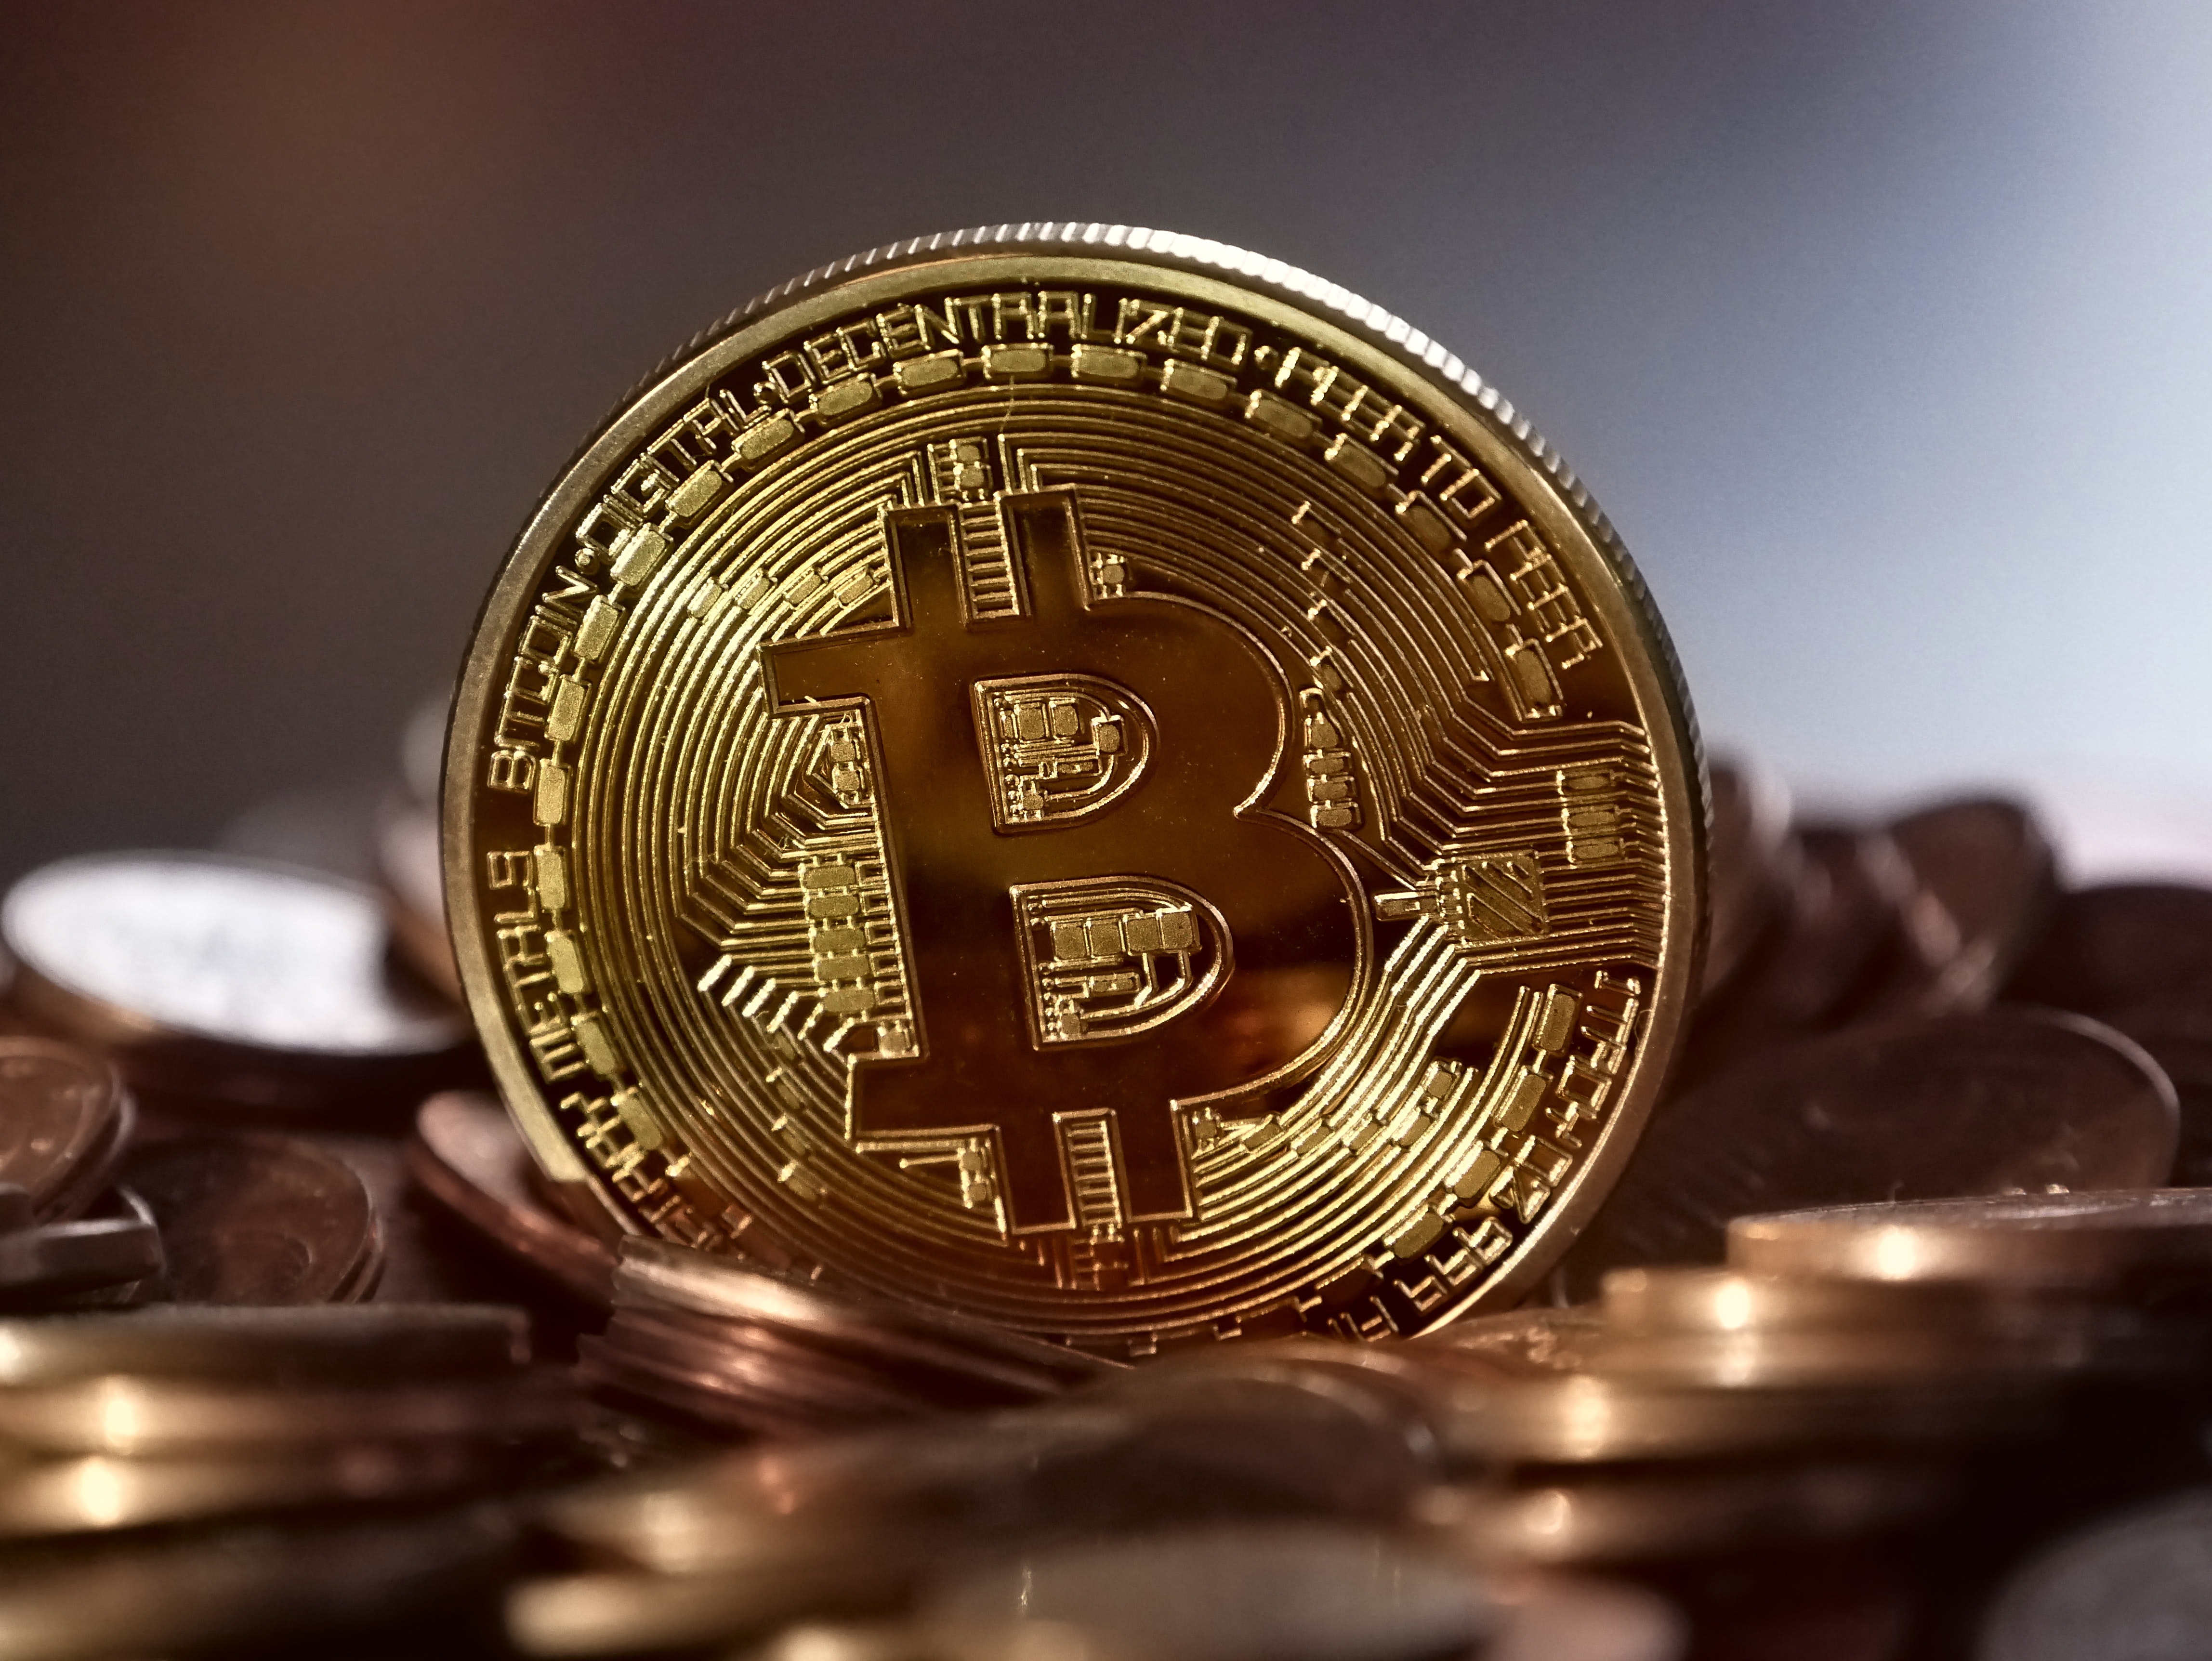 Cryptocurrencies have a long way to go